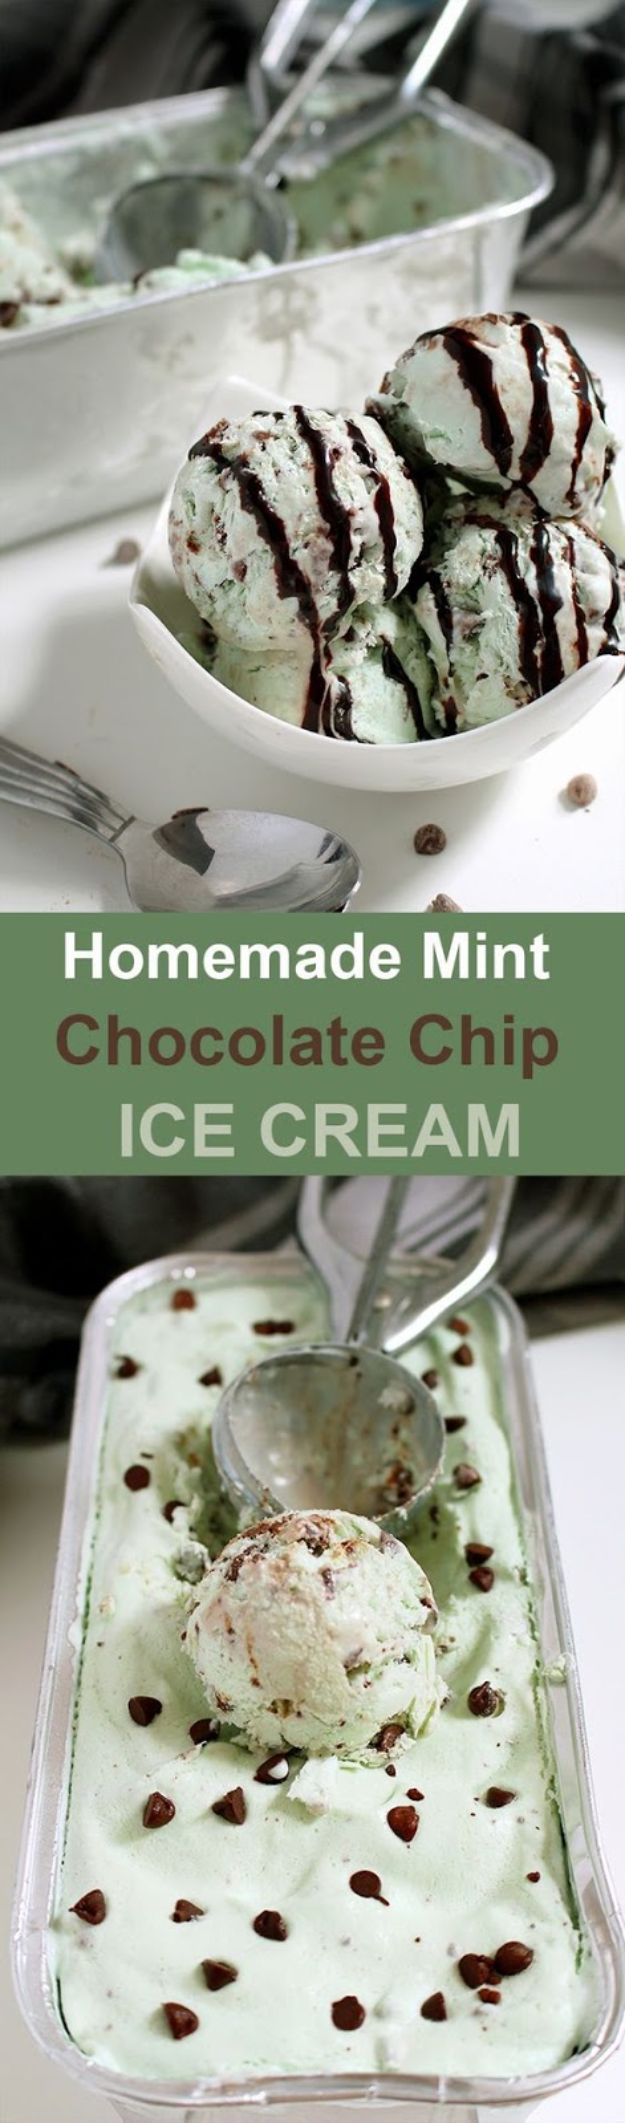 Chocolate Desserts and Recipe Ideas - Homemade Mint Chocolate Chip Ice Cream - Easy Chocolate Recipes With Mint, Peanut Butter and Caramel - Quick No Bake Dessert Idea, Healthy Desserts, Cake, Brownies, Pie and Mousse - Best Fancy Chocolates to Serve for Two, A Crowd, and Simple Snacks http://diyjoy.com/chocolate-dessert-recipes